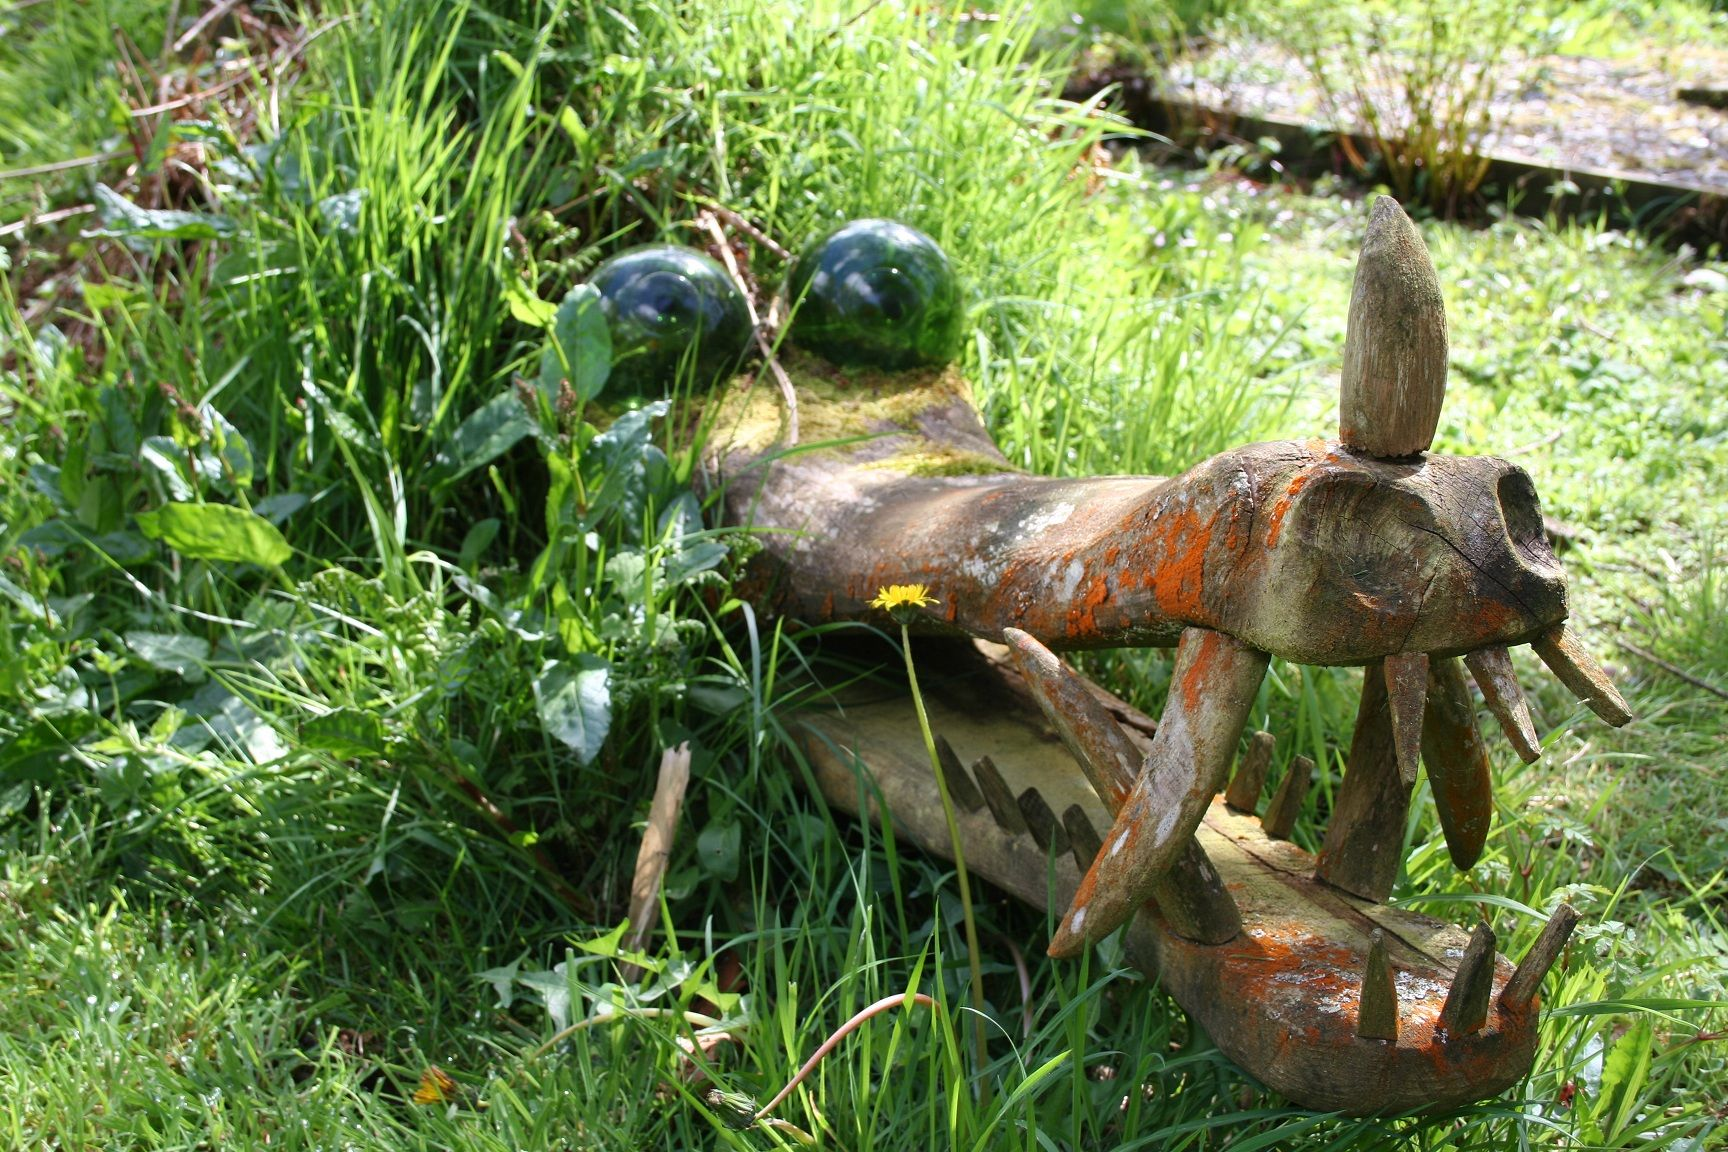 Gardens make a great backdrop to sculpture but artist Peter Boex has gone a step further, carving imposing artworks from the trees in his woodlands, writes LOUISE DANKS    Art in the garden should be thought-provoking, exciting …